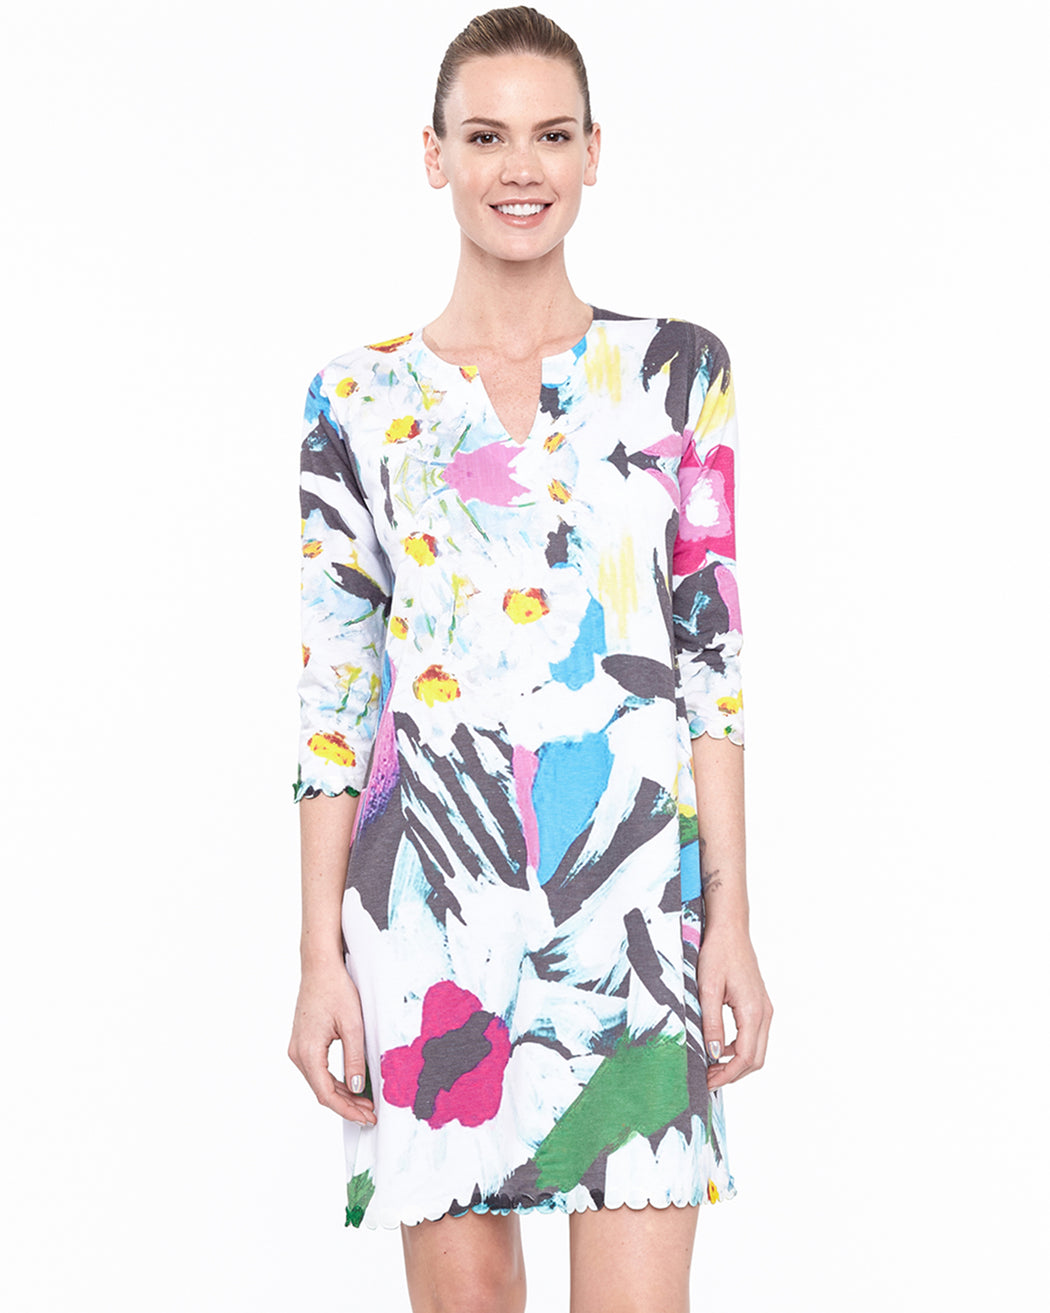 Hawaiian Notch Neck Dress in Wonderland Print - Atelier5